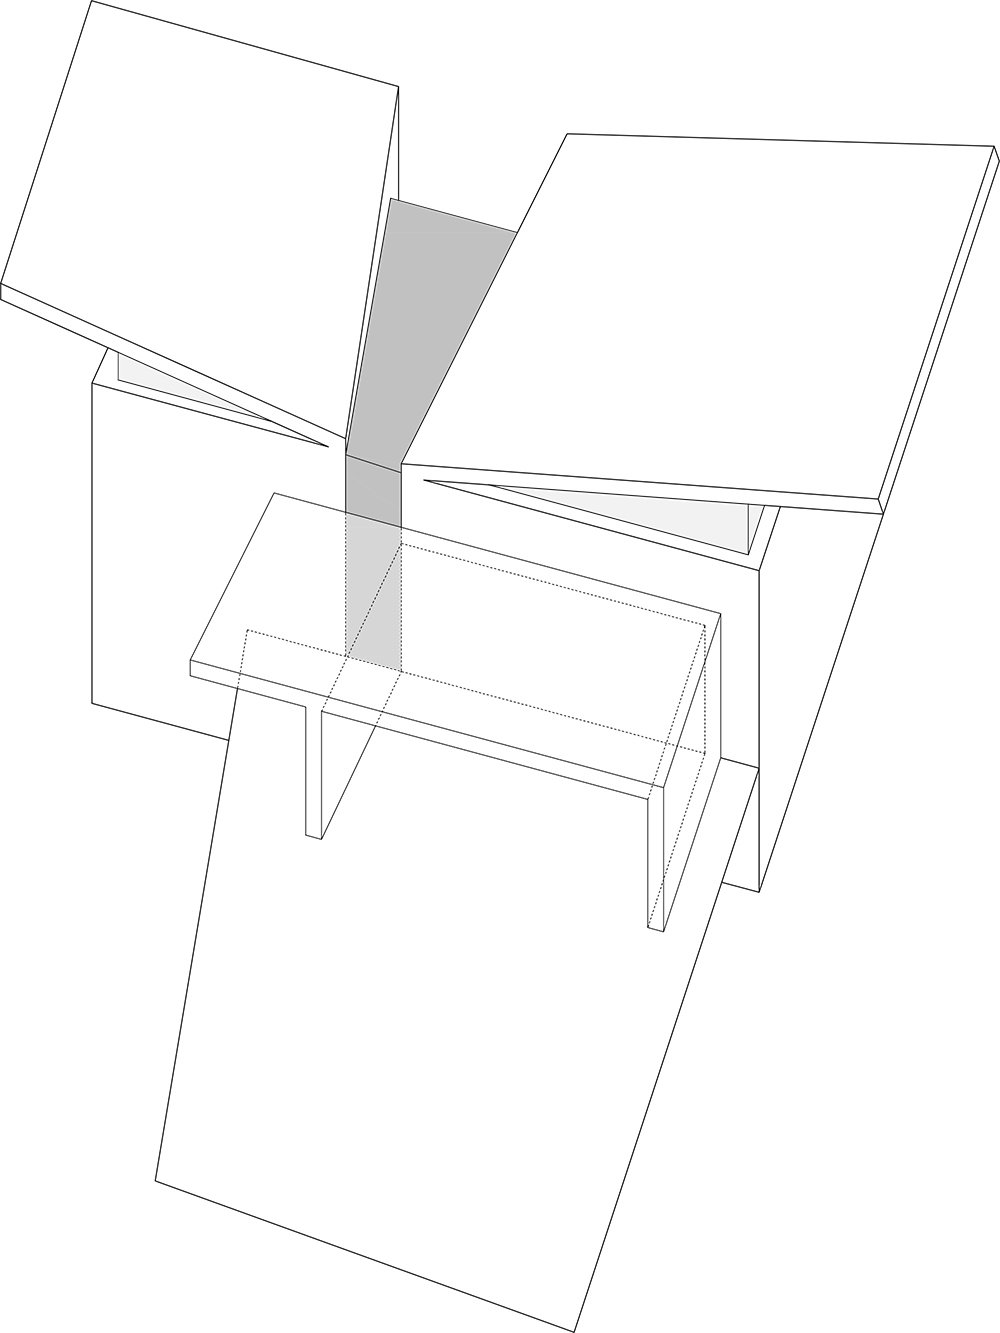 Conceptual diagram of the two blocks sit that come together in the middle with a wedge-shaped volume that forms the entrance and the vertical circulation leading to the main spaces of the house The Wedge House by Marianna Athanasiadou